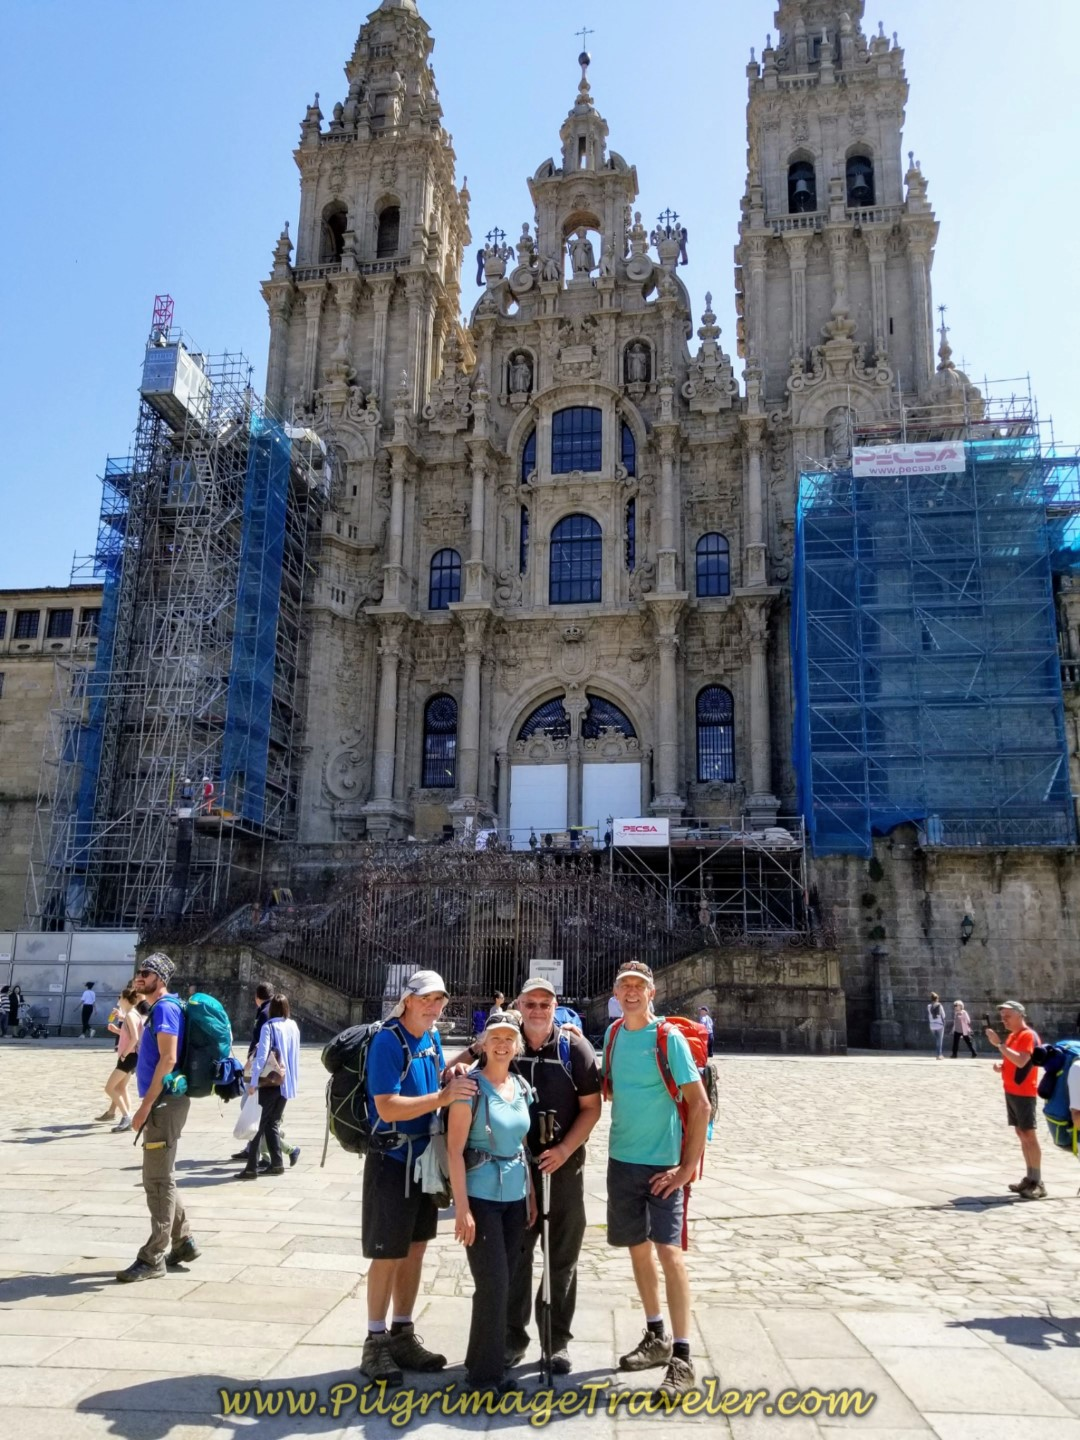 Rob, Elle, Steve and Rich, Happy Pilgrimage Travelers in Obradoiro Square on day eight of the English Way